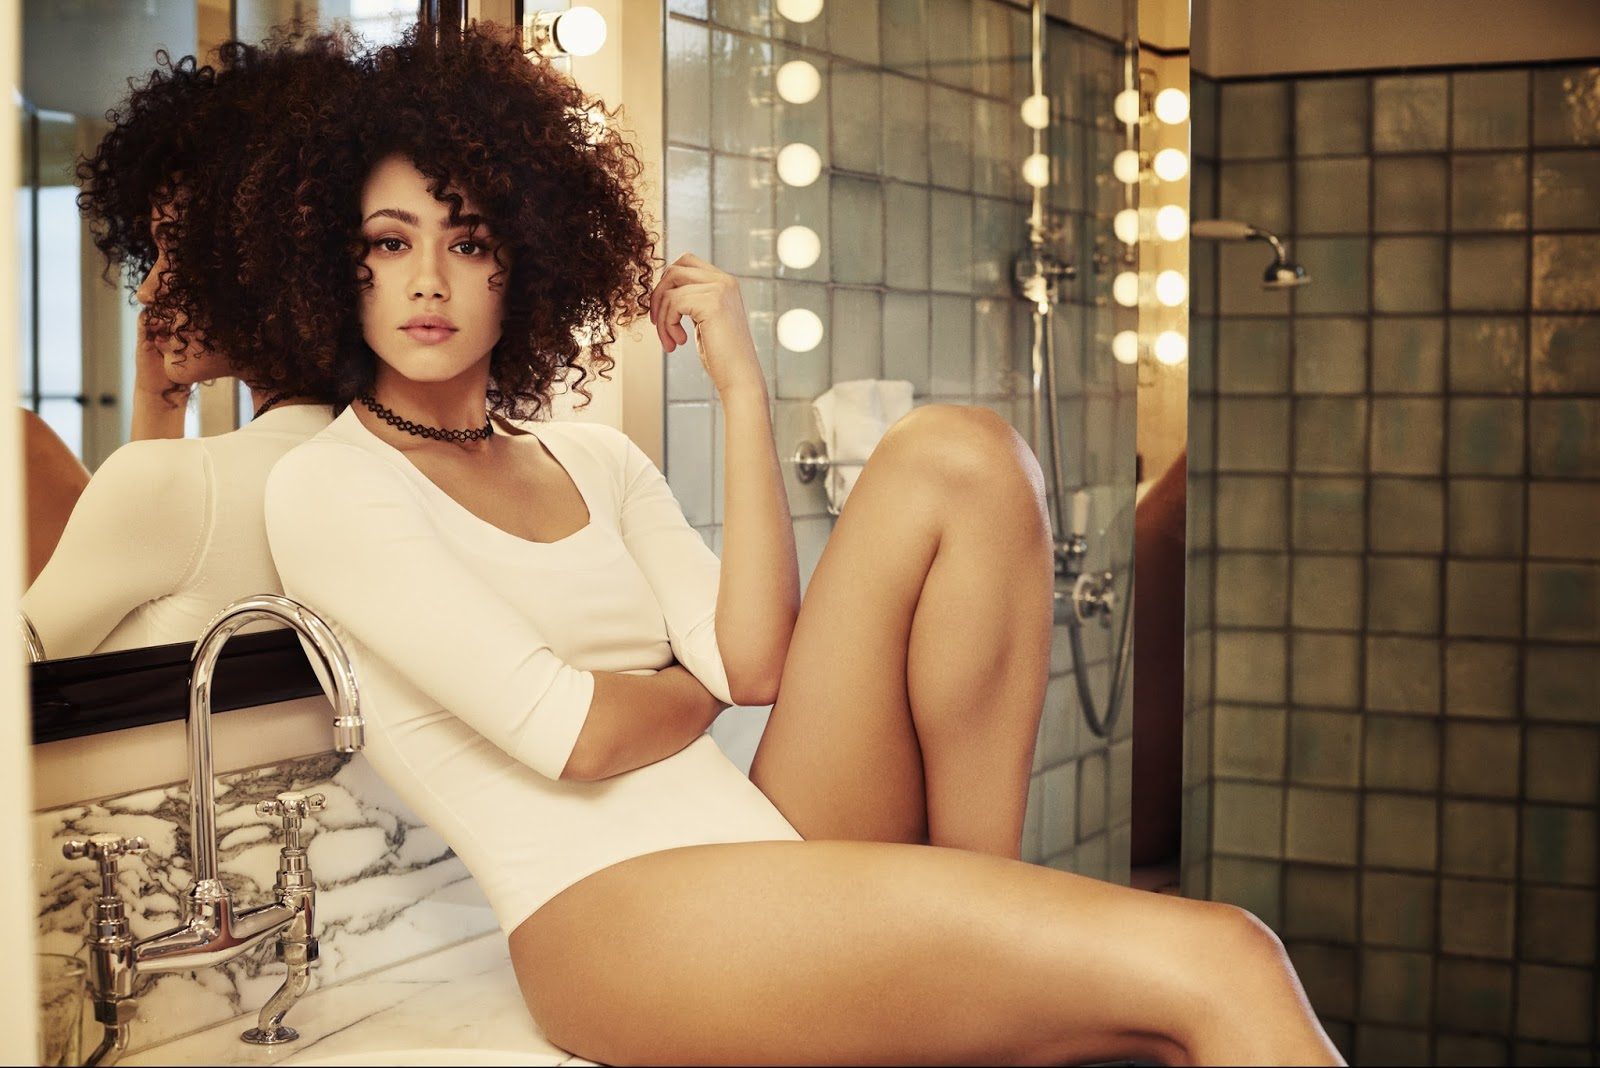 Nathalie Emmanuel - sexiest babes from Game of Thrones